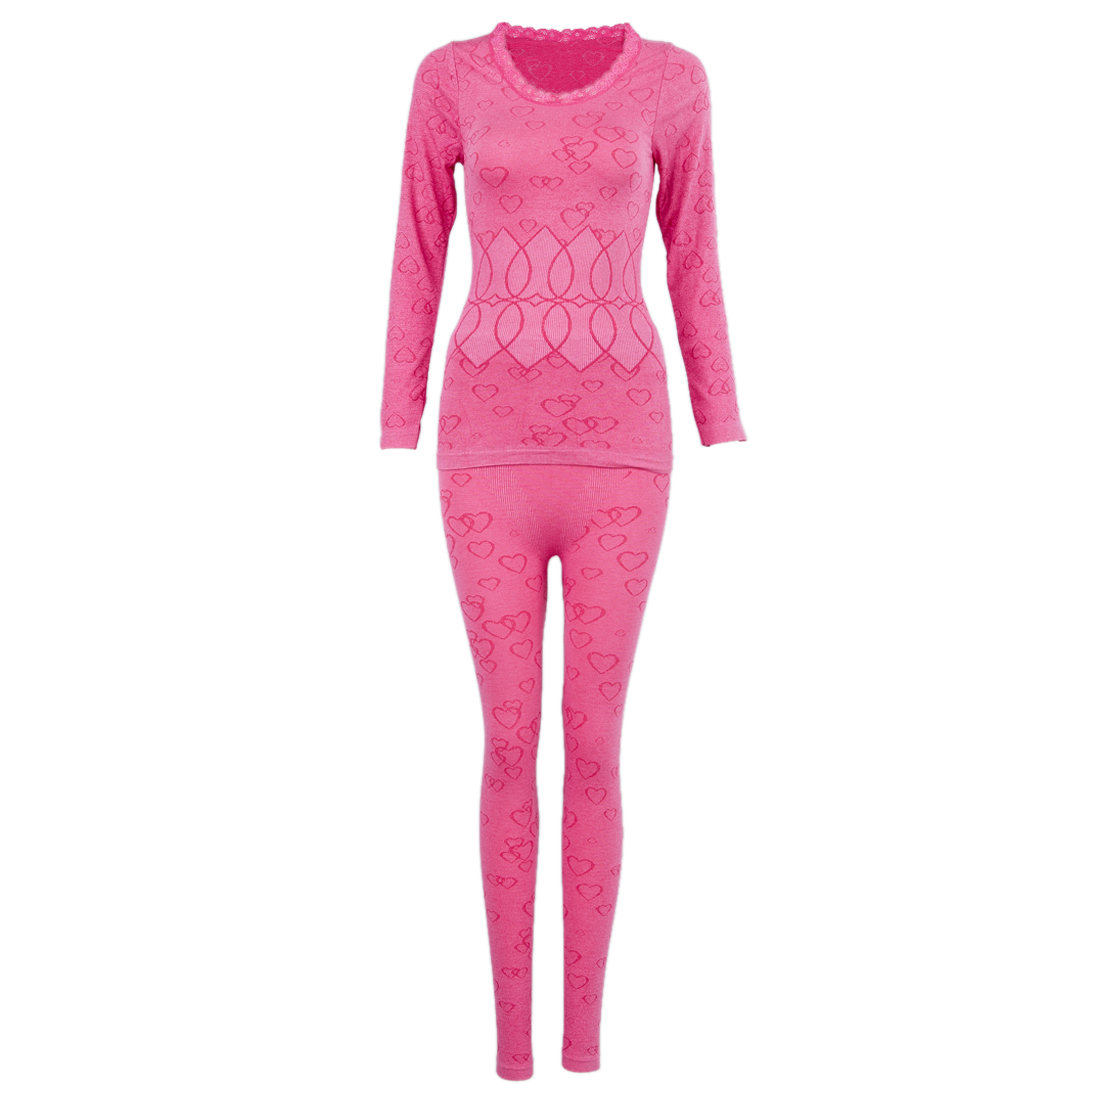 Find great deals on eBay for womens long john pajamas. Shop with confidence.